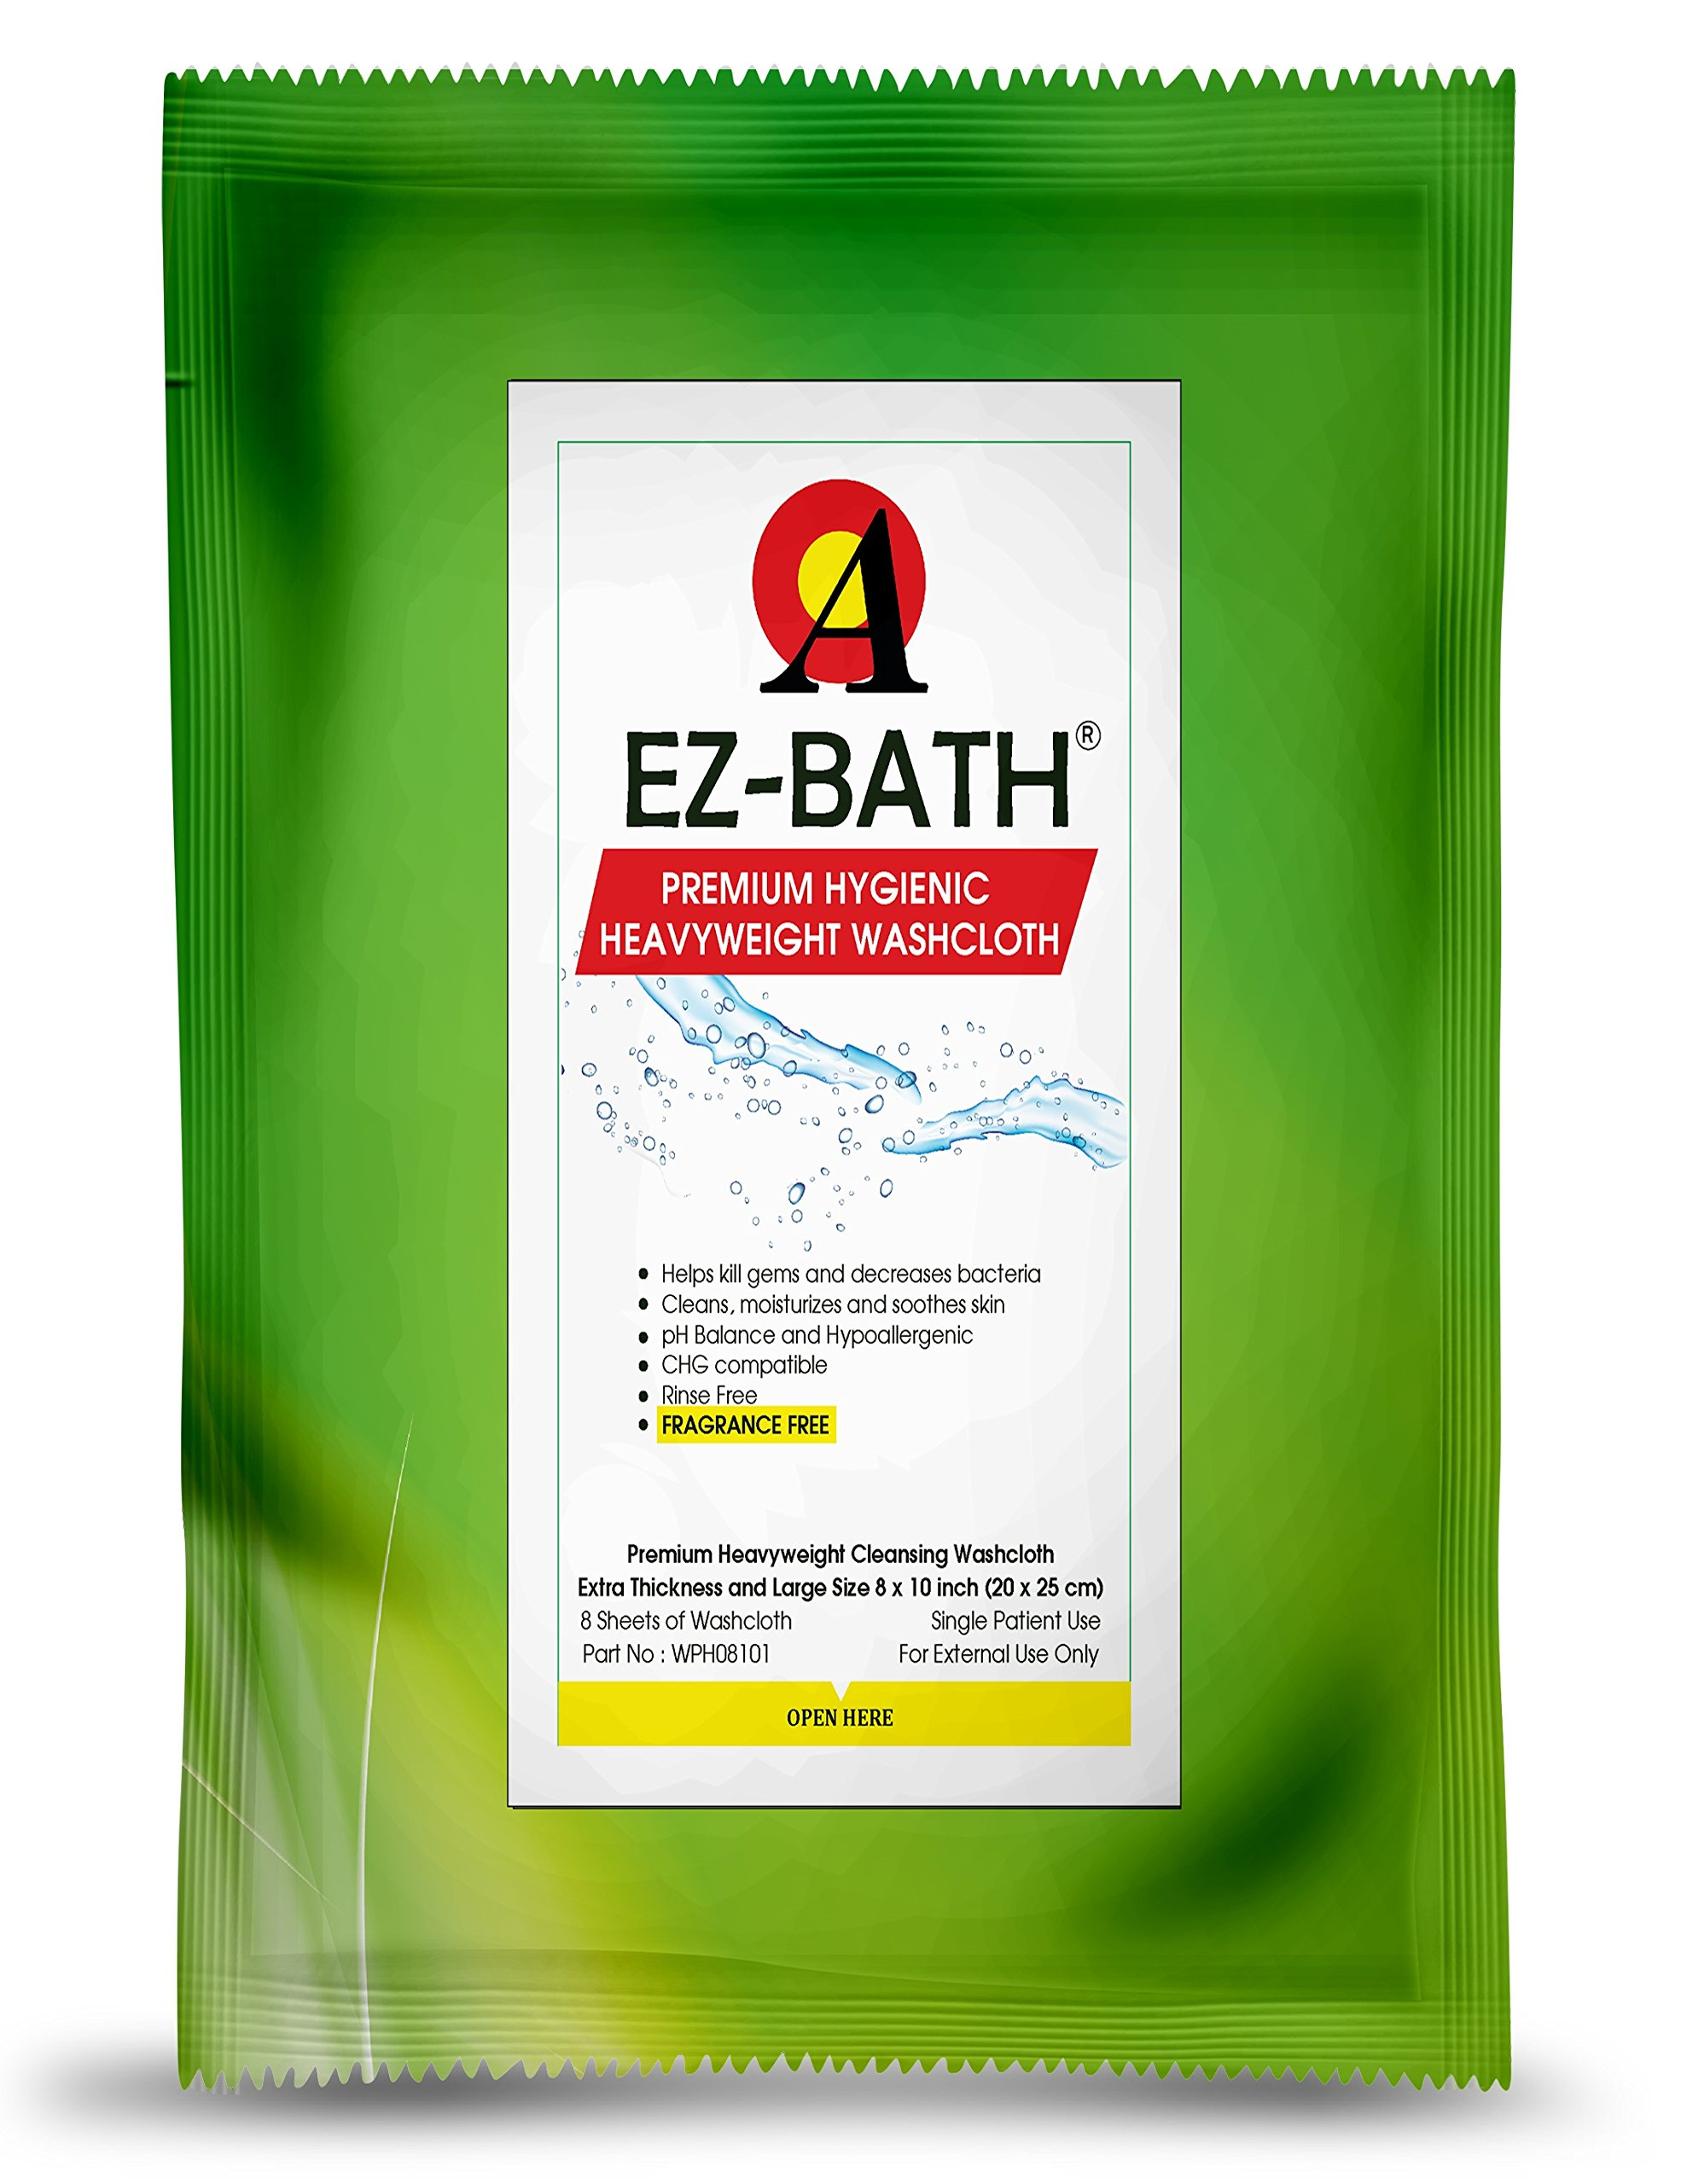 Heavyweight Cleansing Cloths, Unscented, Hygienic pH Balance(8 Sheets-8 Packs) by EZ-BATH